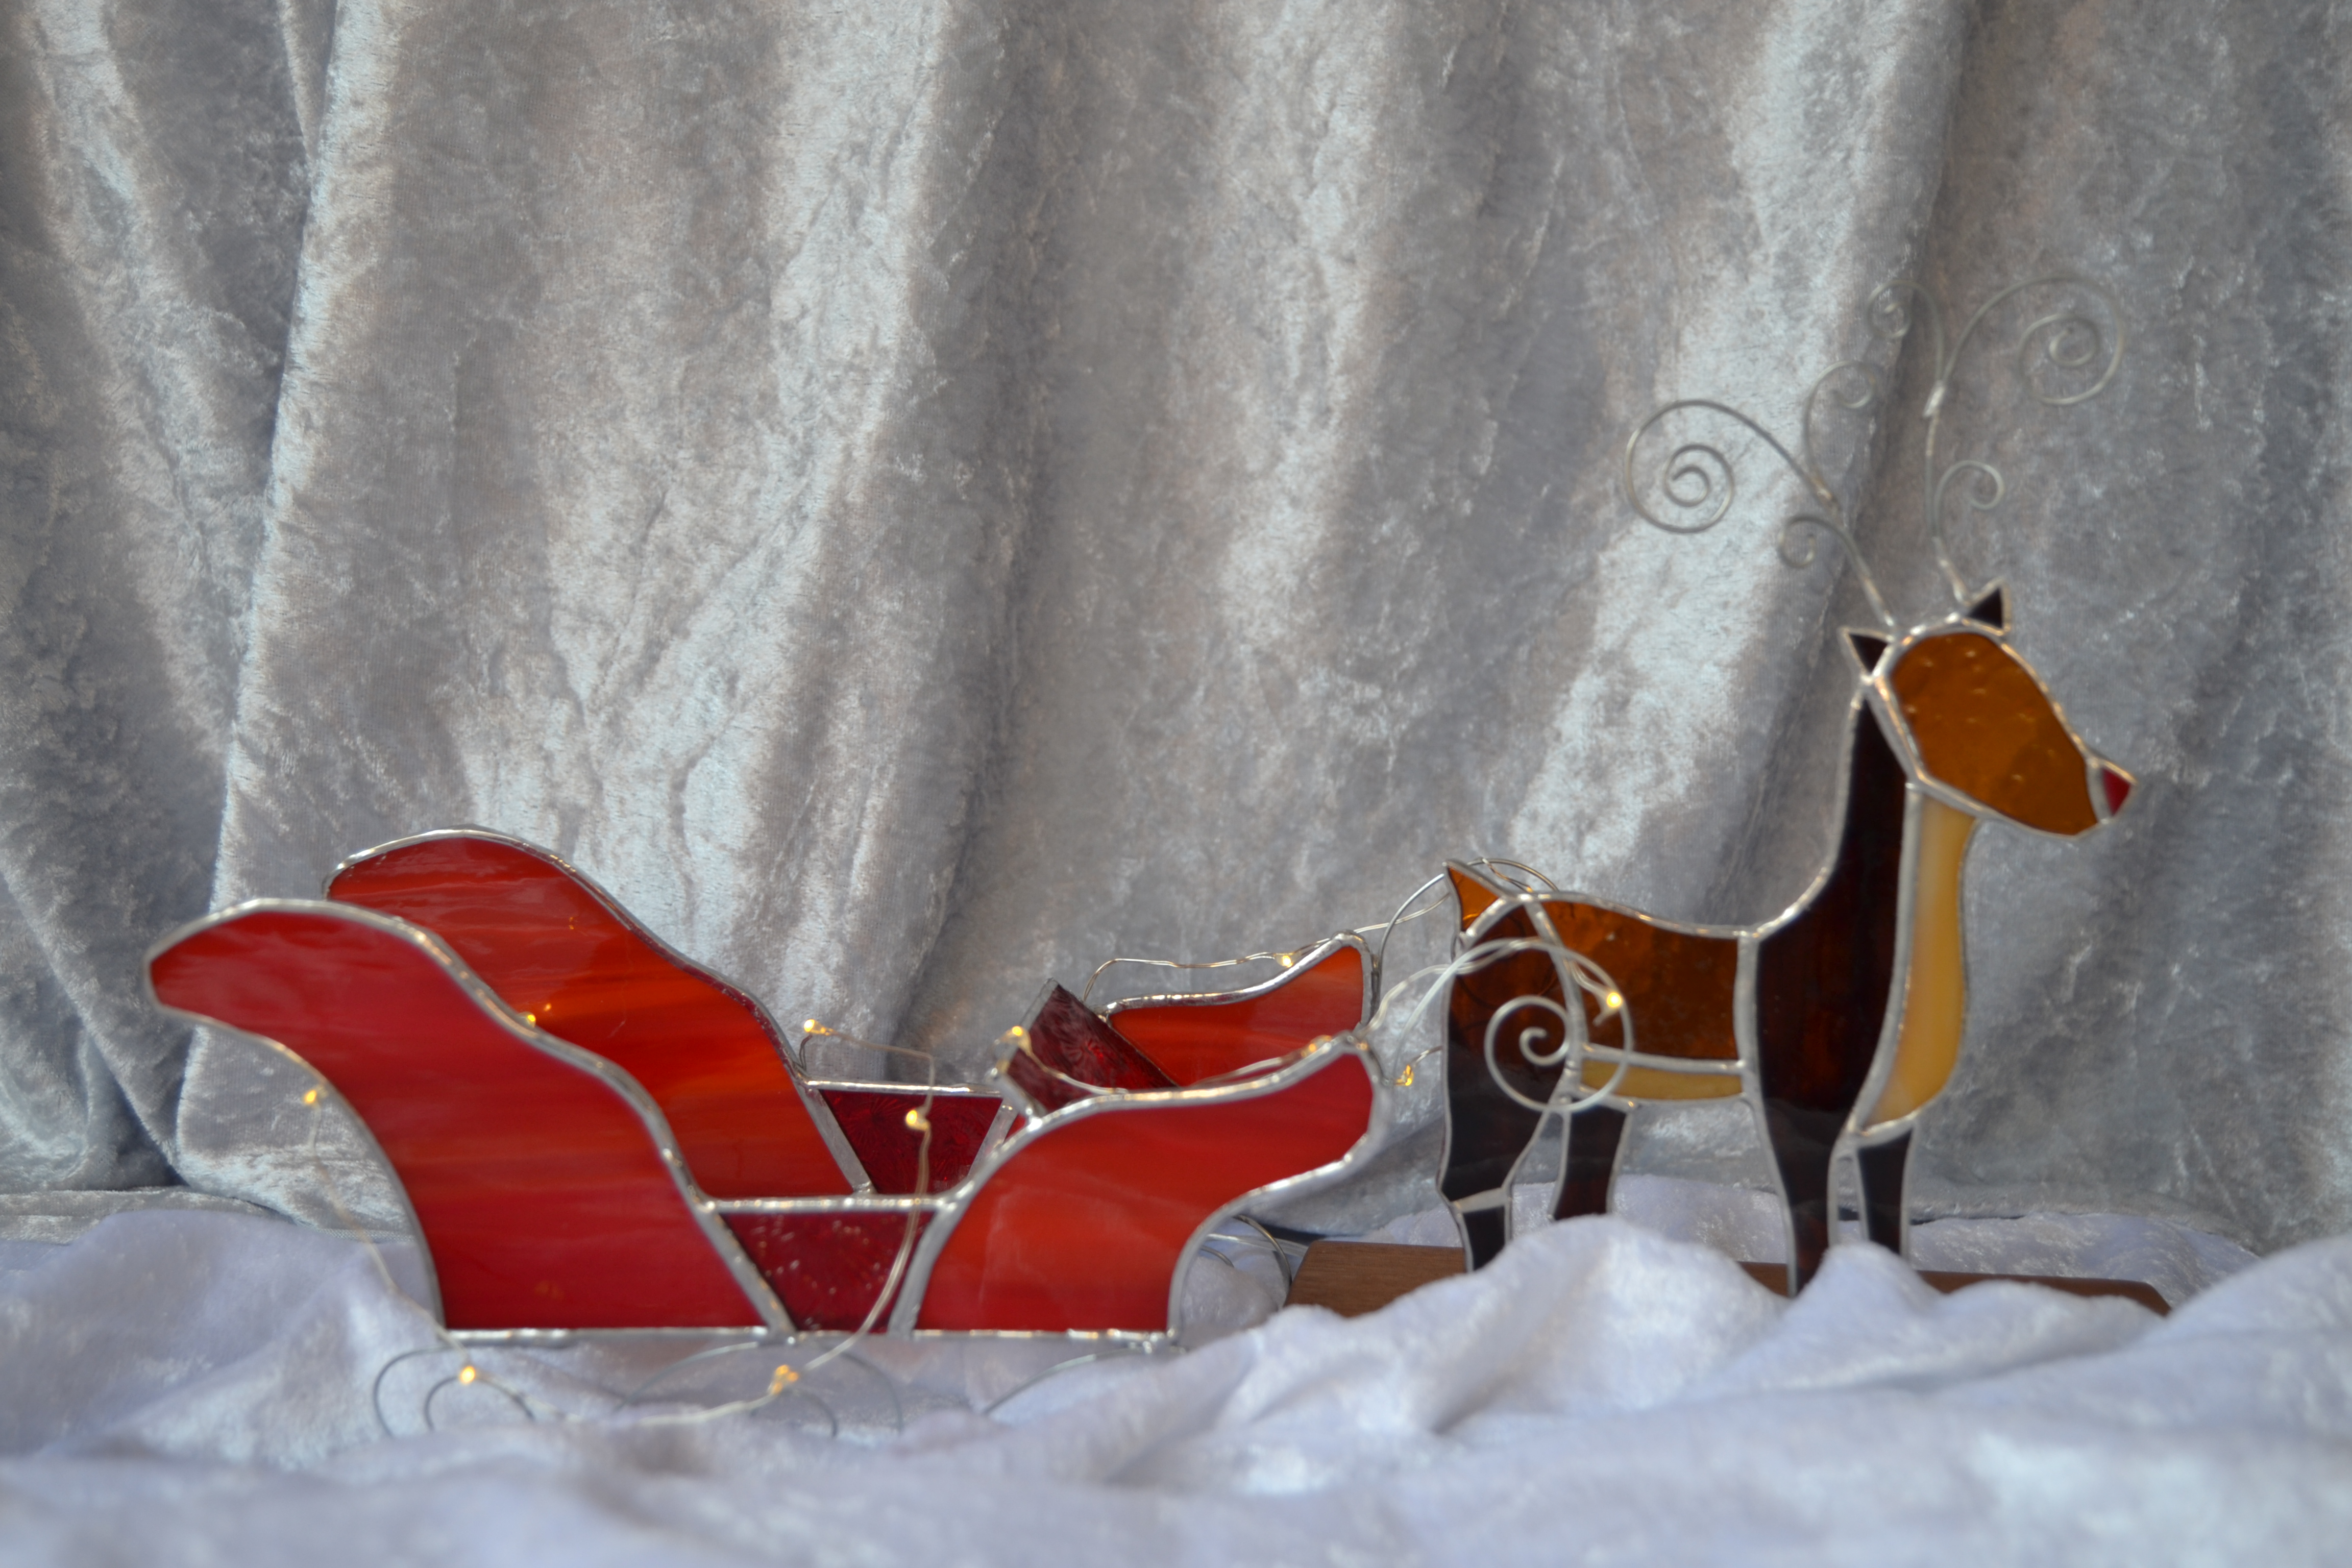 Sweetie sleigh and Rudolph